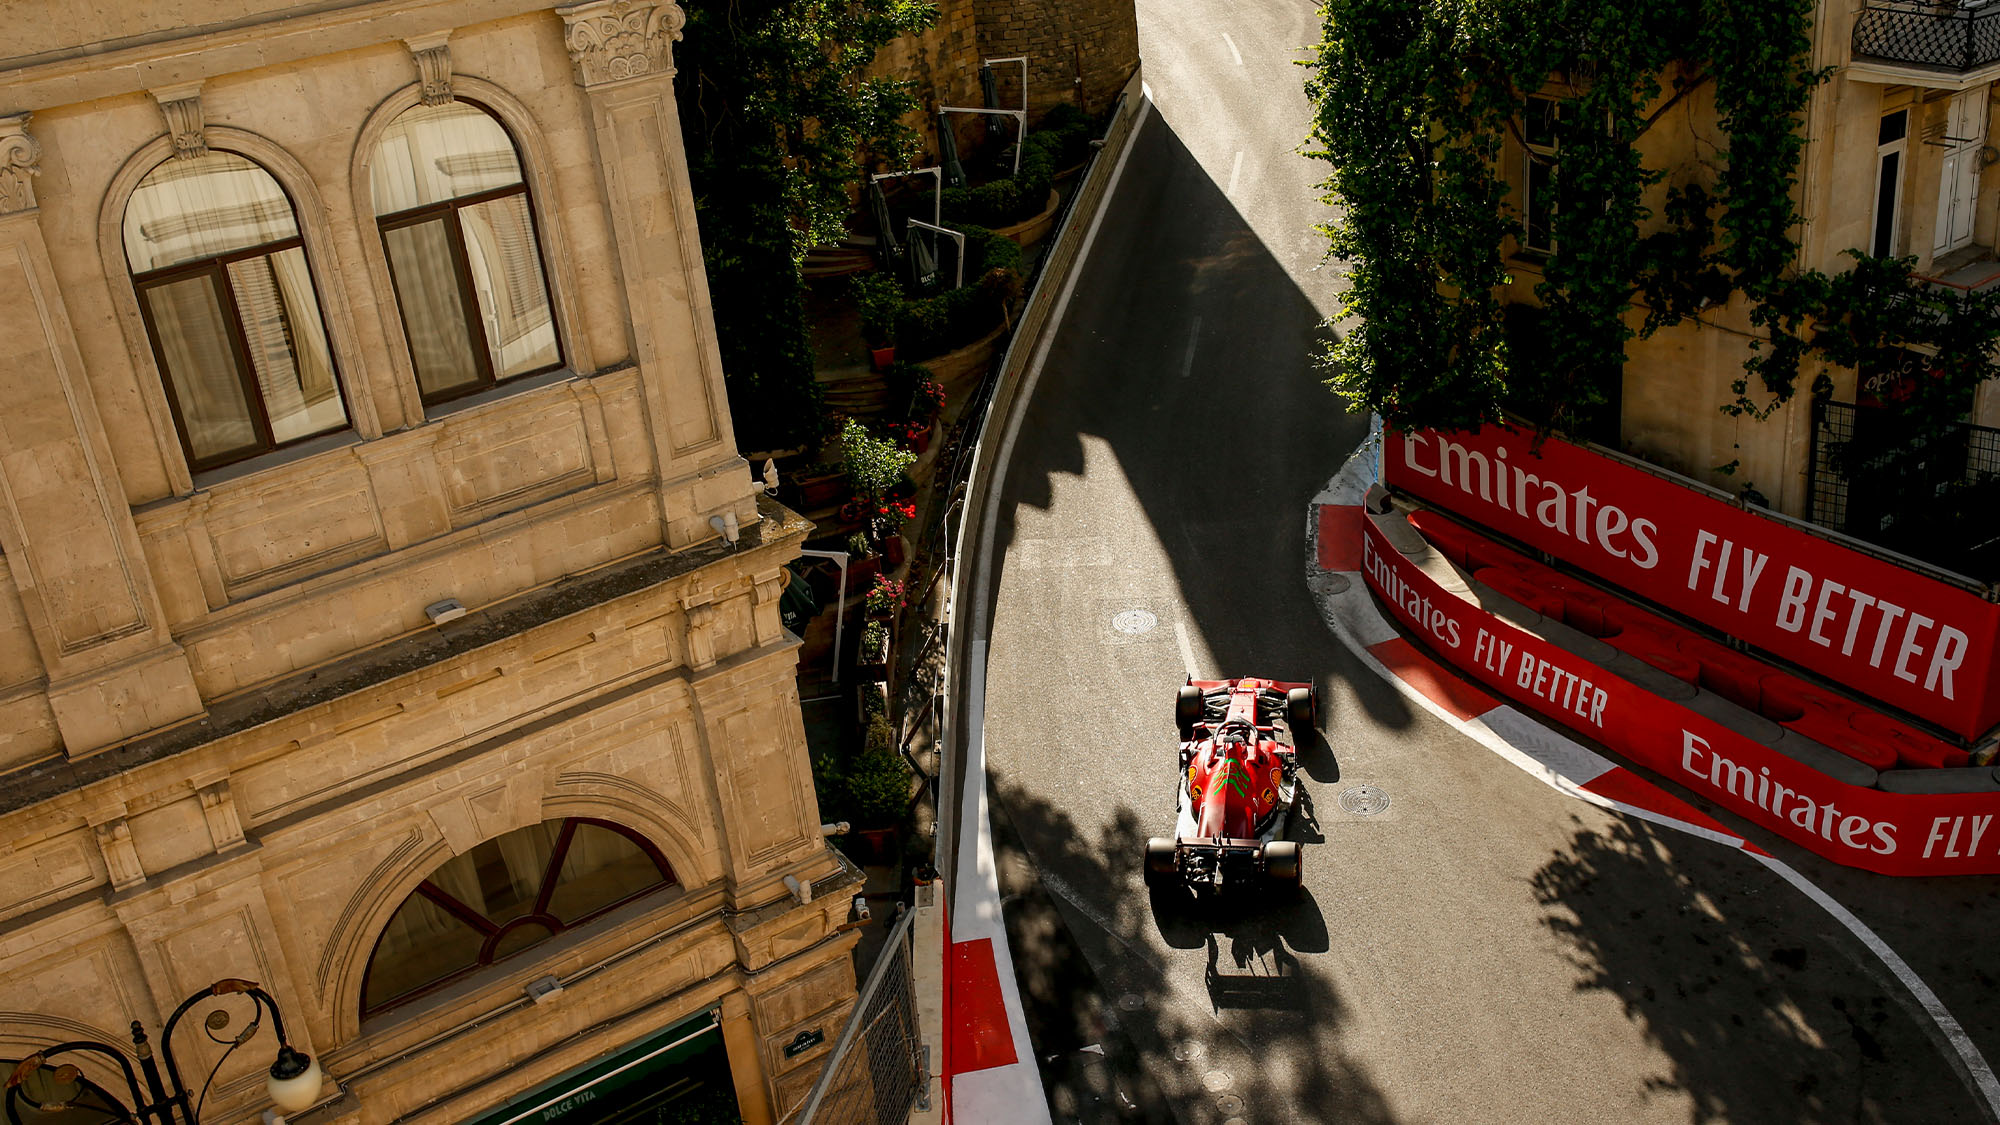 Charles Leclerc in the old town during 2021 Azerbaijan GP